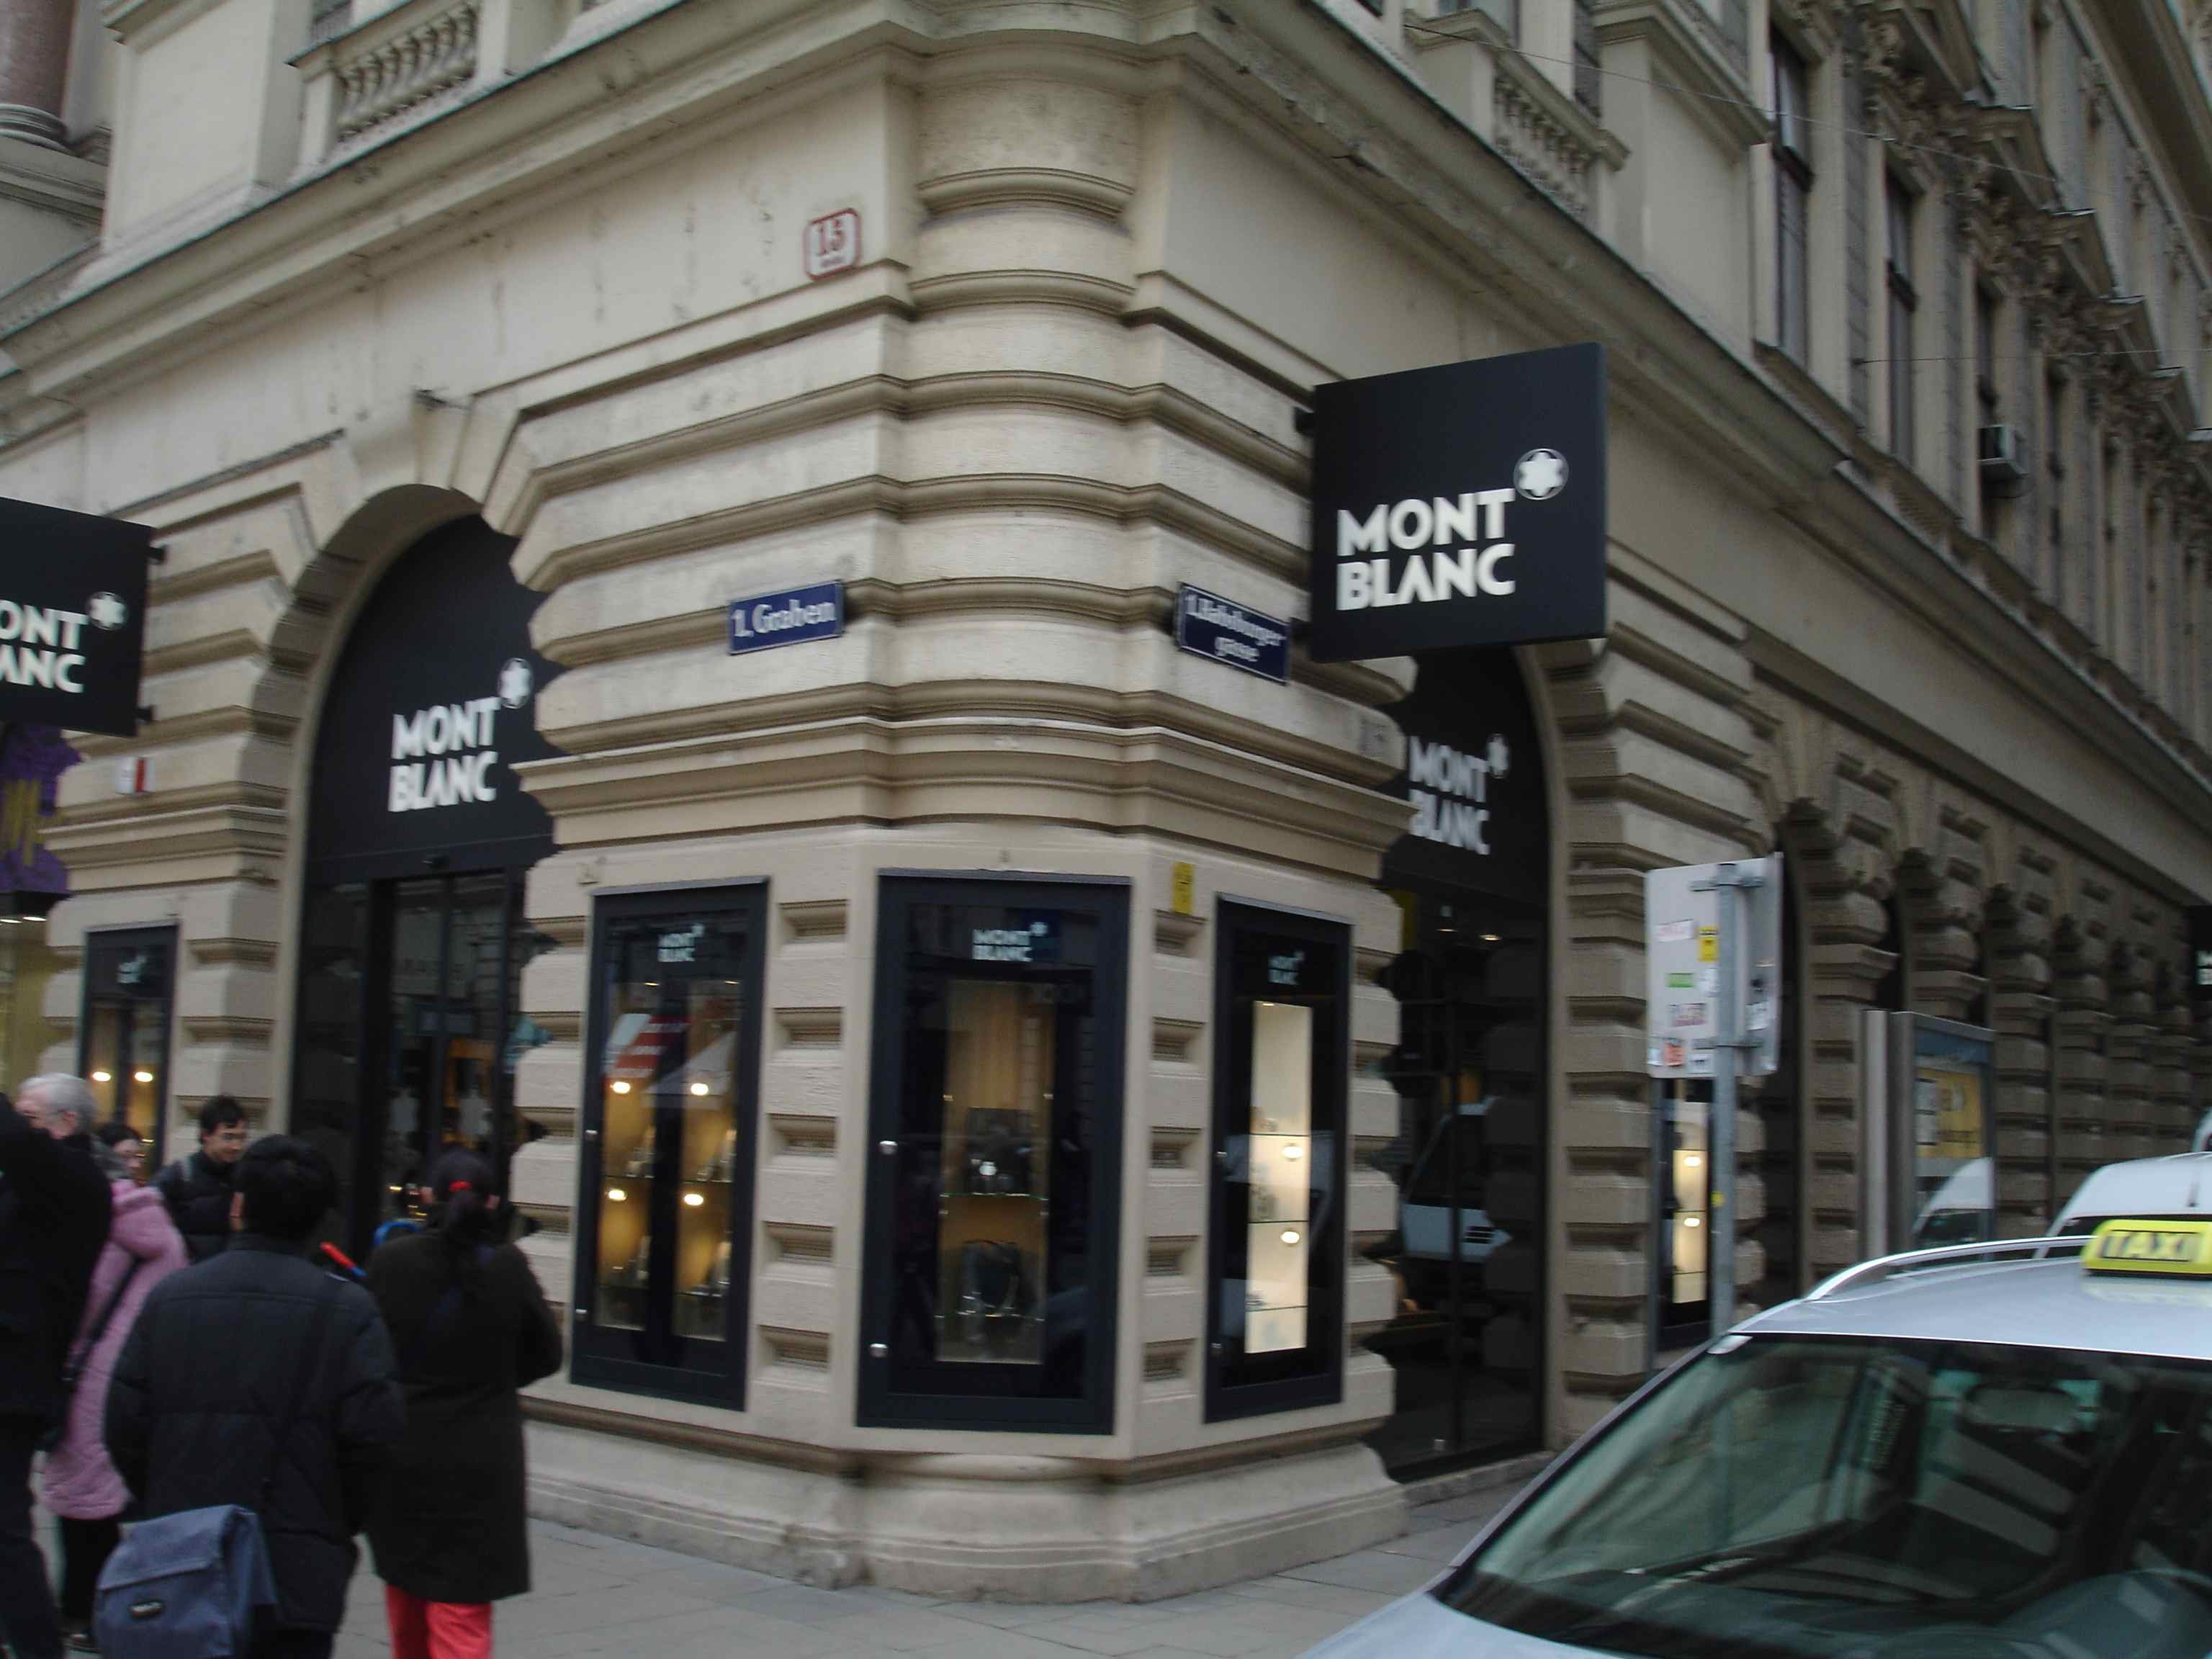 montblanc boutique in vienna montblanc the fountain. Black Bedroom Furniture Sets. Home Design Ideas